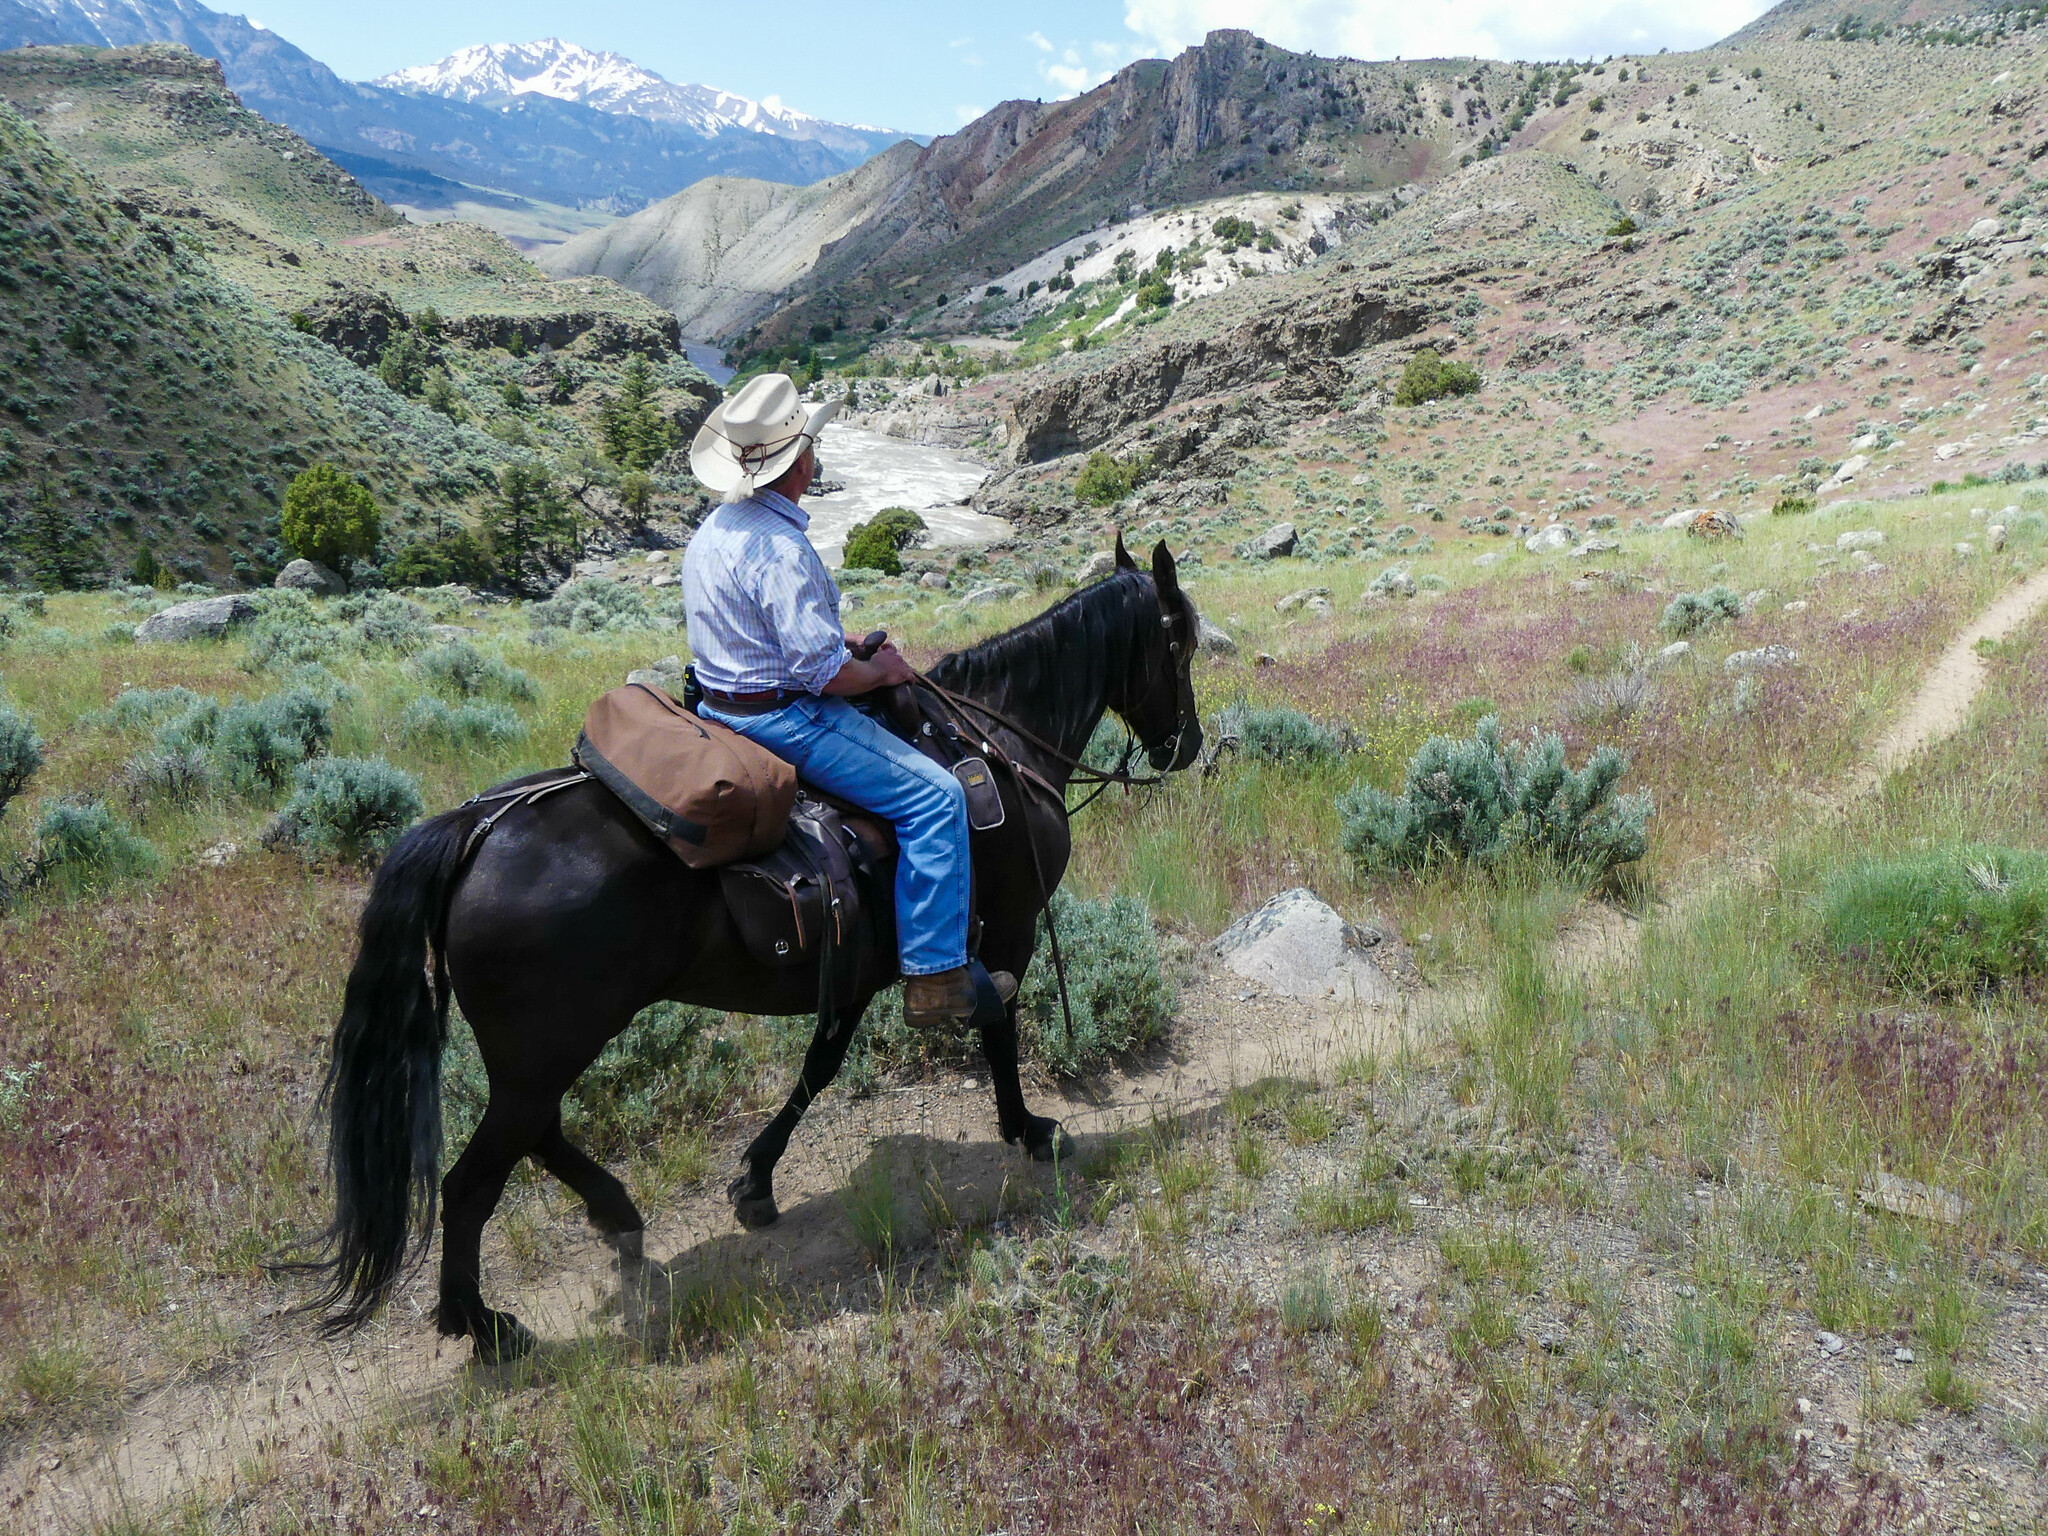 Riding on the Yellowstone River Trail through the Black Canyon of the Yellowstone